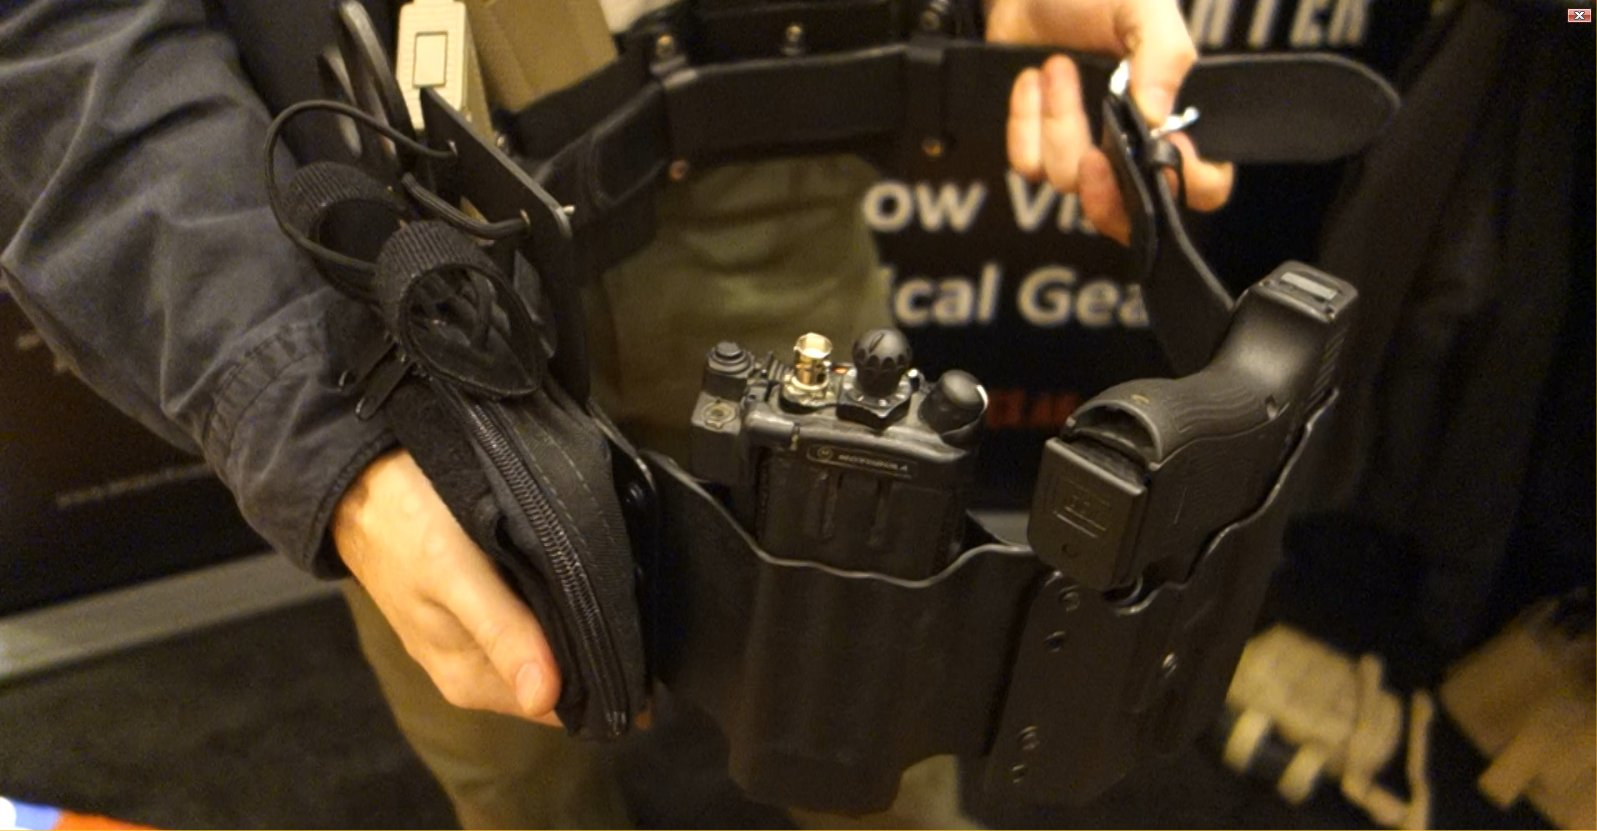 High Threat Concealment HTC Low Profile System LPS Modular Gunfighting Belt Carrier System Tactical Gun Belt David Crane DefenseReview.com DR 4 High Threat Concealment HTC Low Profile System (LPS) Modular Gunfighting Belt/Carrier System for Lo Pro/Lo Vis Tactical Ops! (Video!)